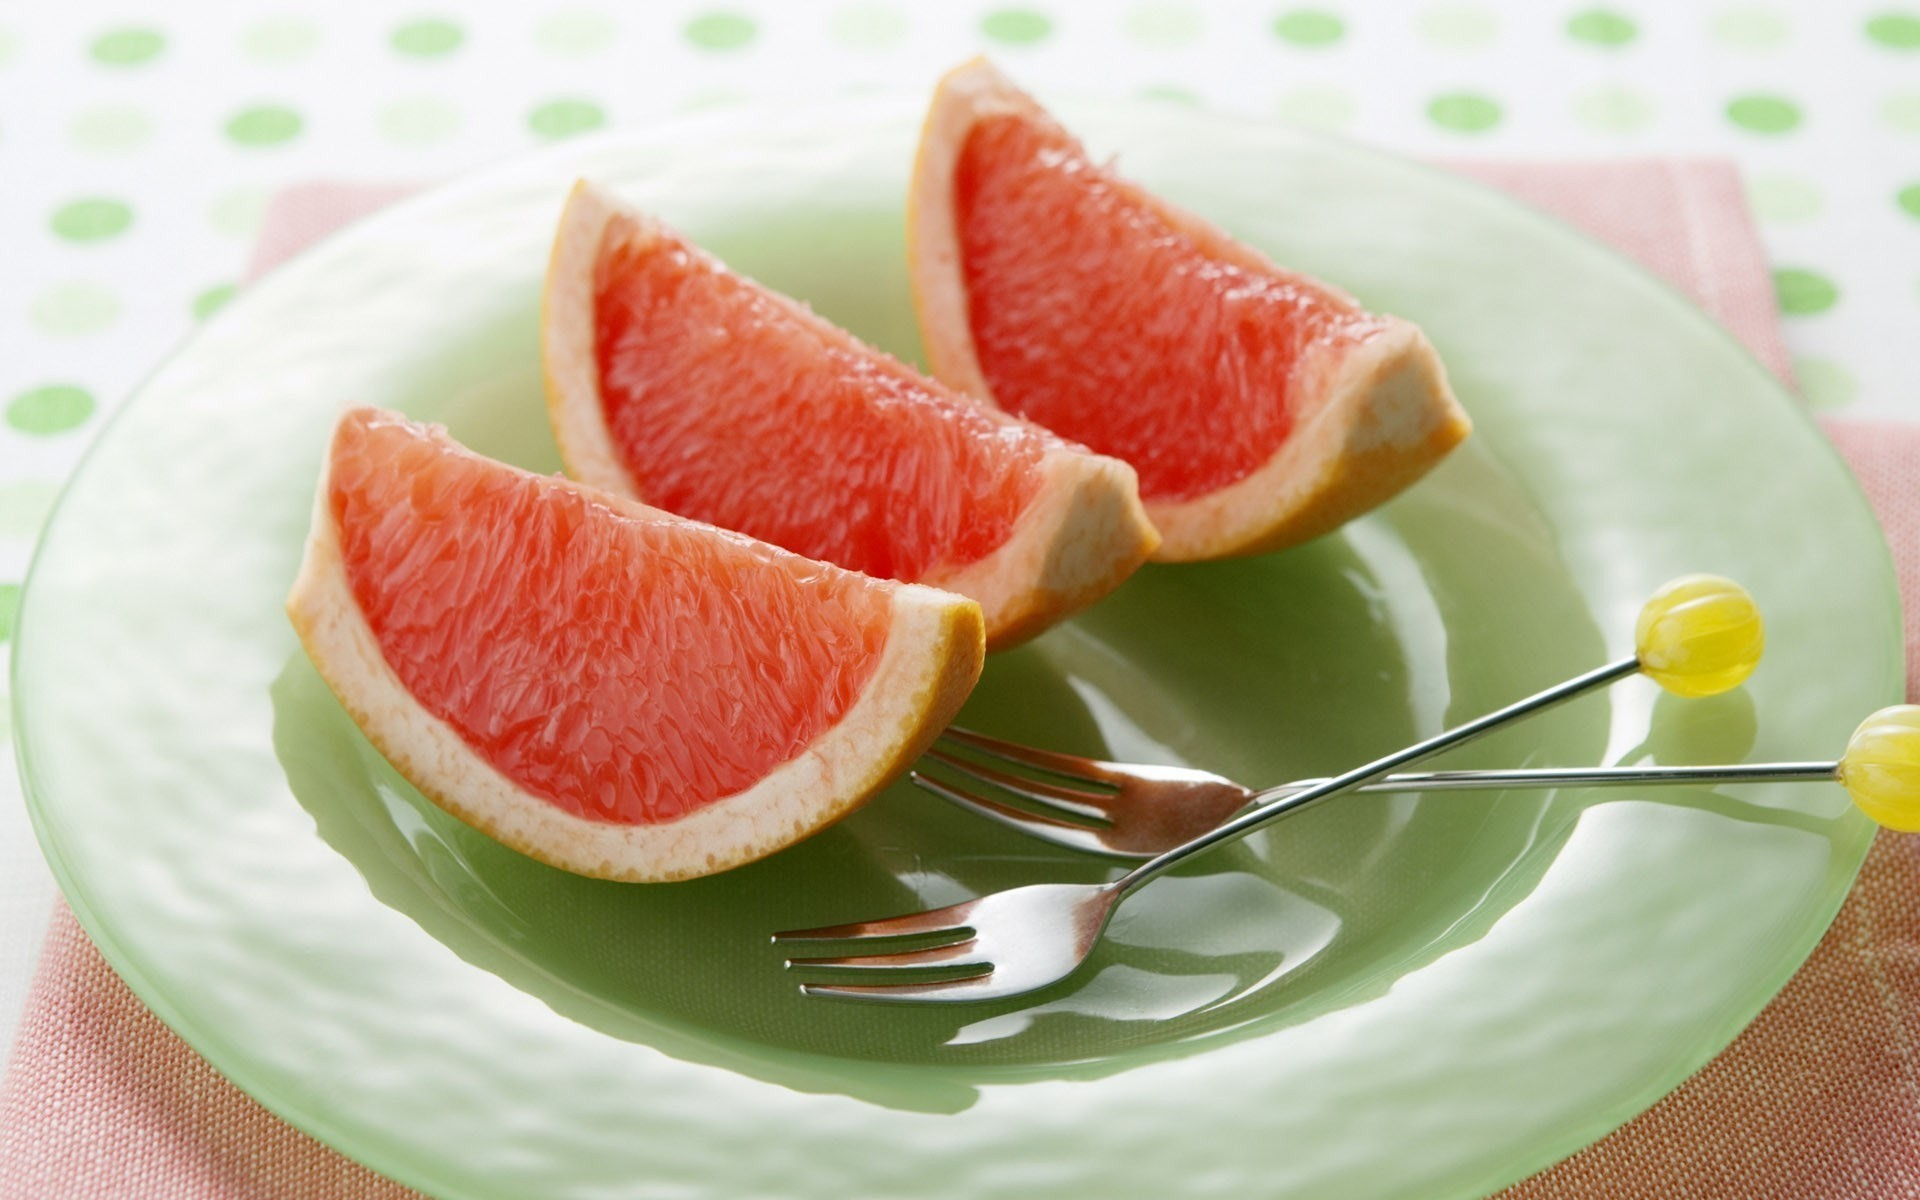 food-fruit-grapefruit-hd-wallpaper-1920x1200